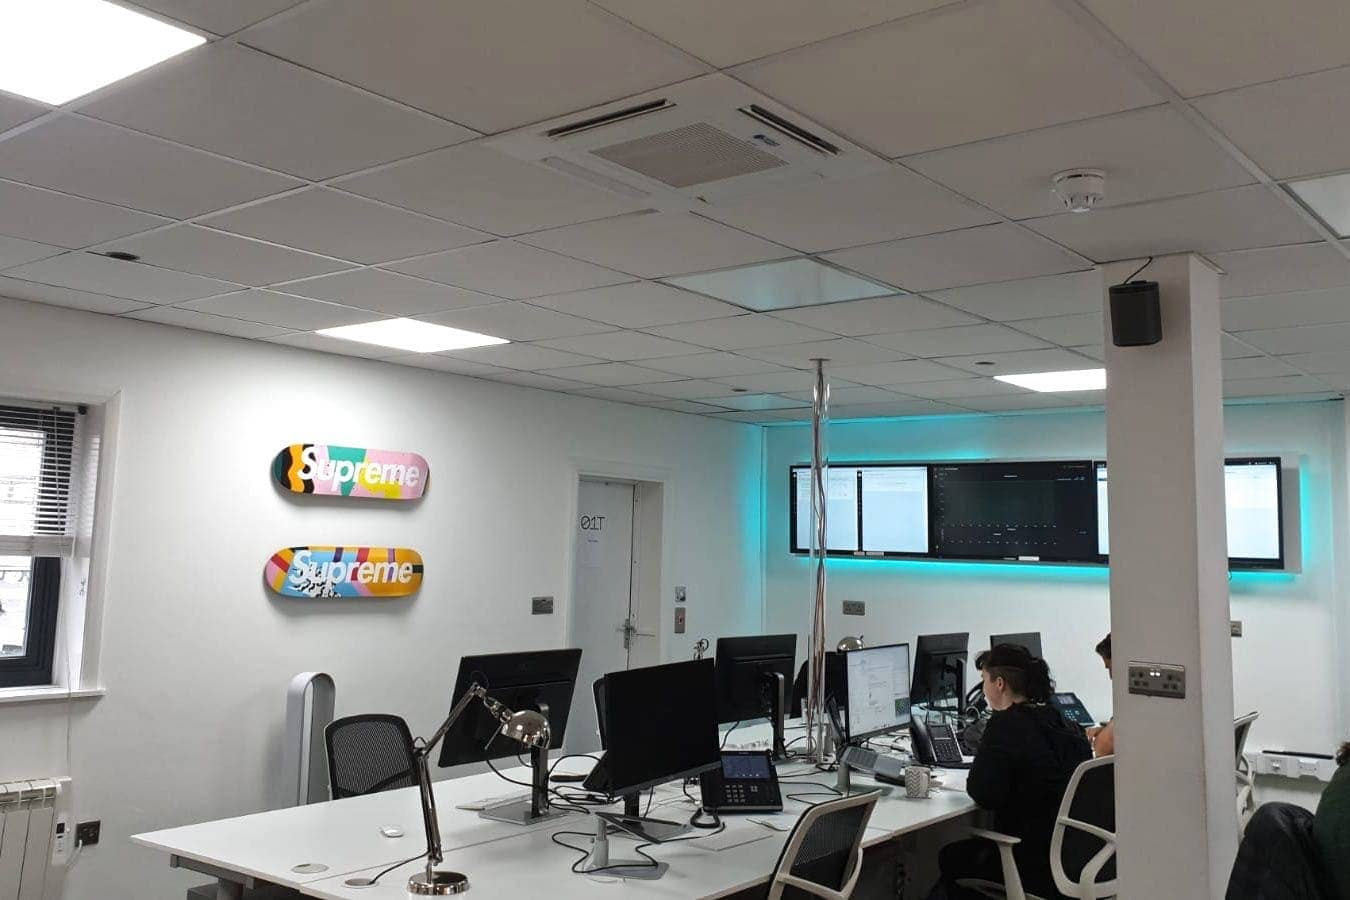 White 4 way ceiling cassette commercial air conditioning in Brighton offices in computer and desk area fitted by SubCool FM